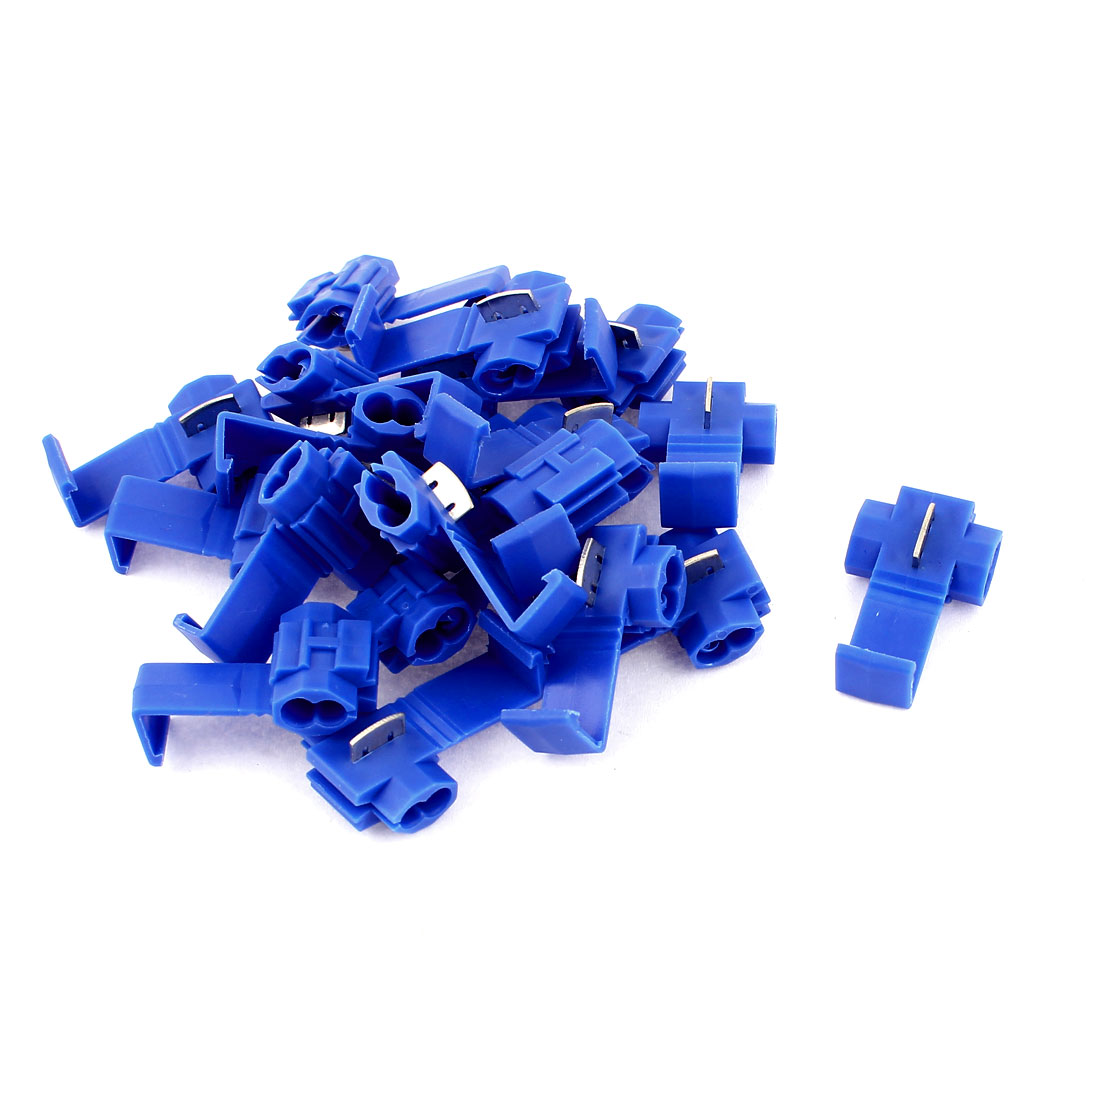 20 Pcs Blue Electrical Cable Connectors Quick Splice 18-14AWG Lock Wire Terminals Crimp